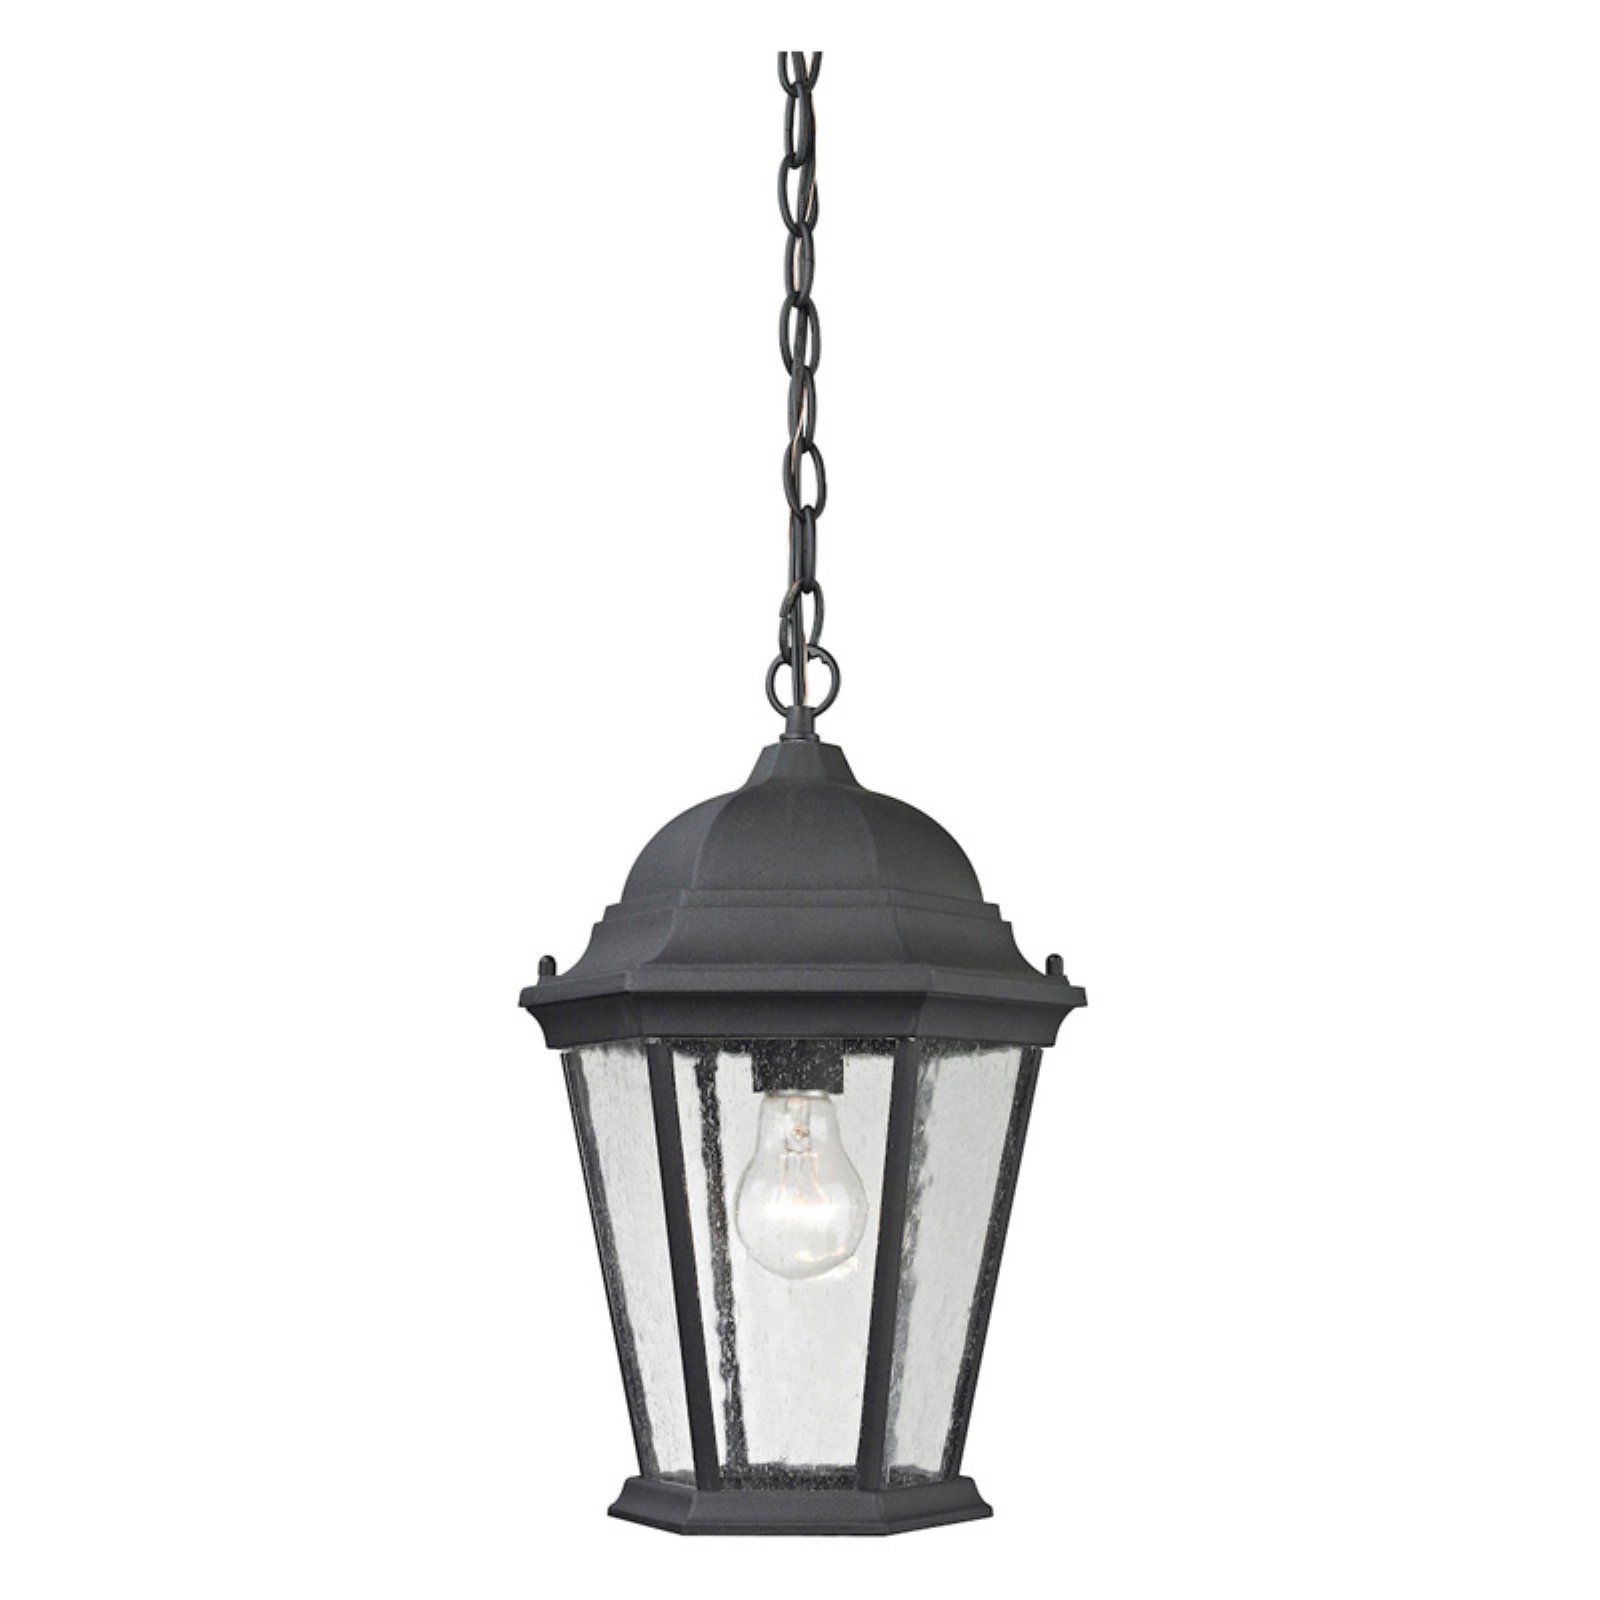 Thomas Lighting Temple Hill 8101 Outdoor Pendant Light by CornerStone